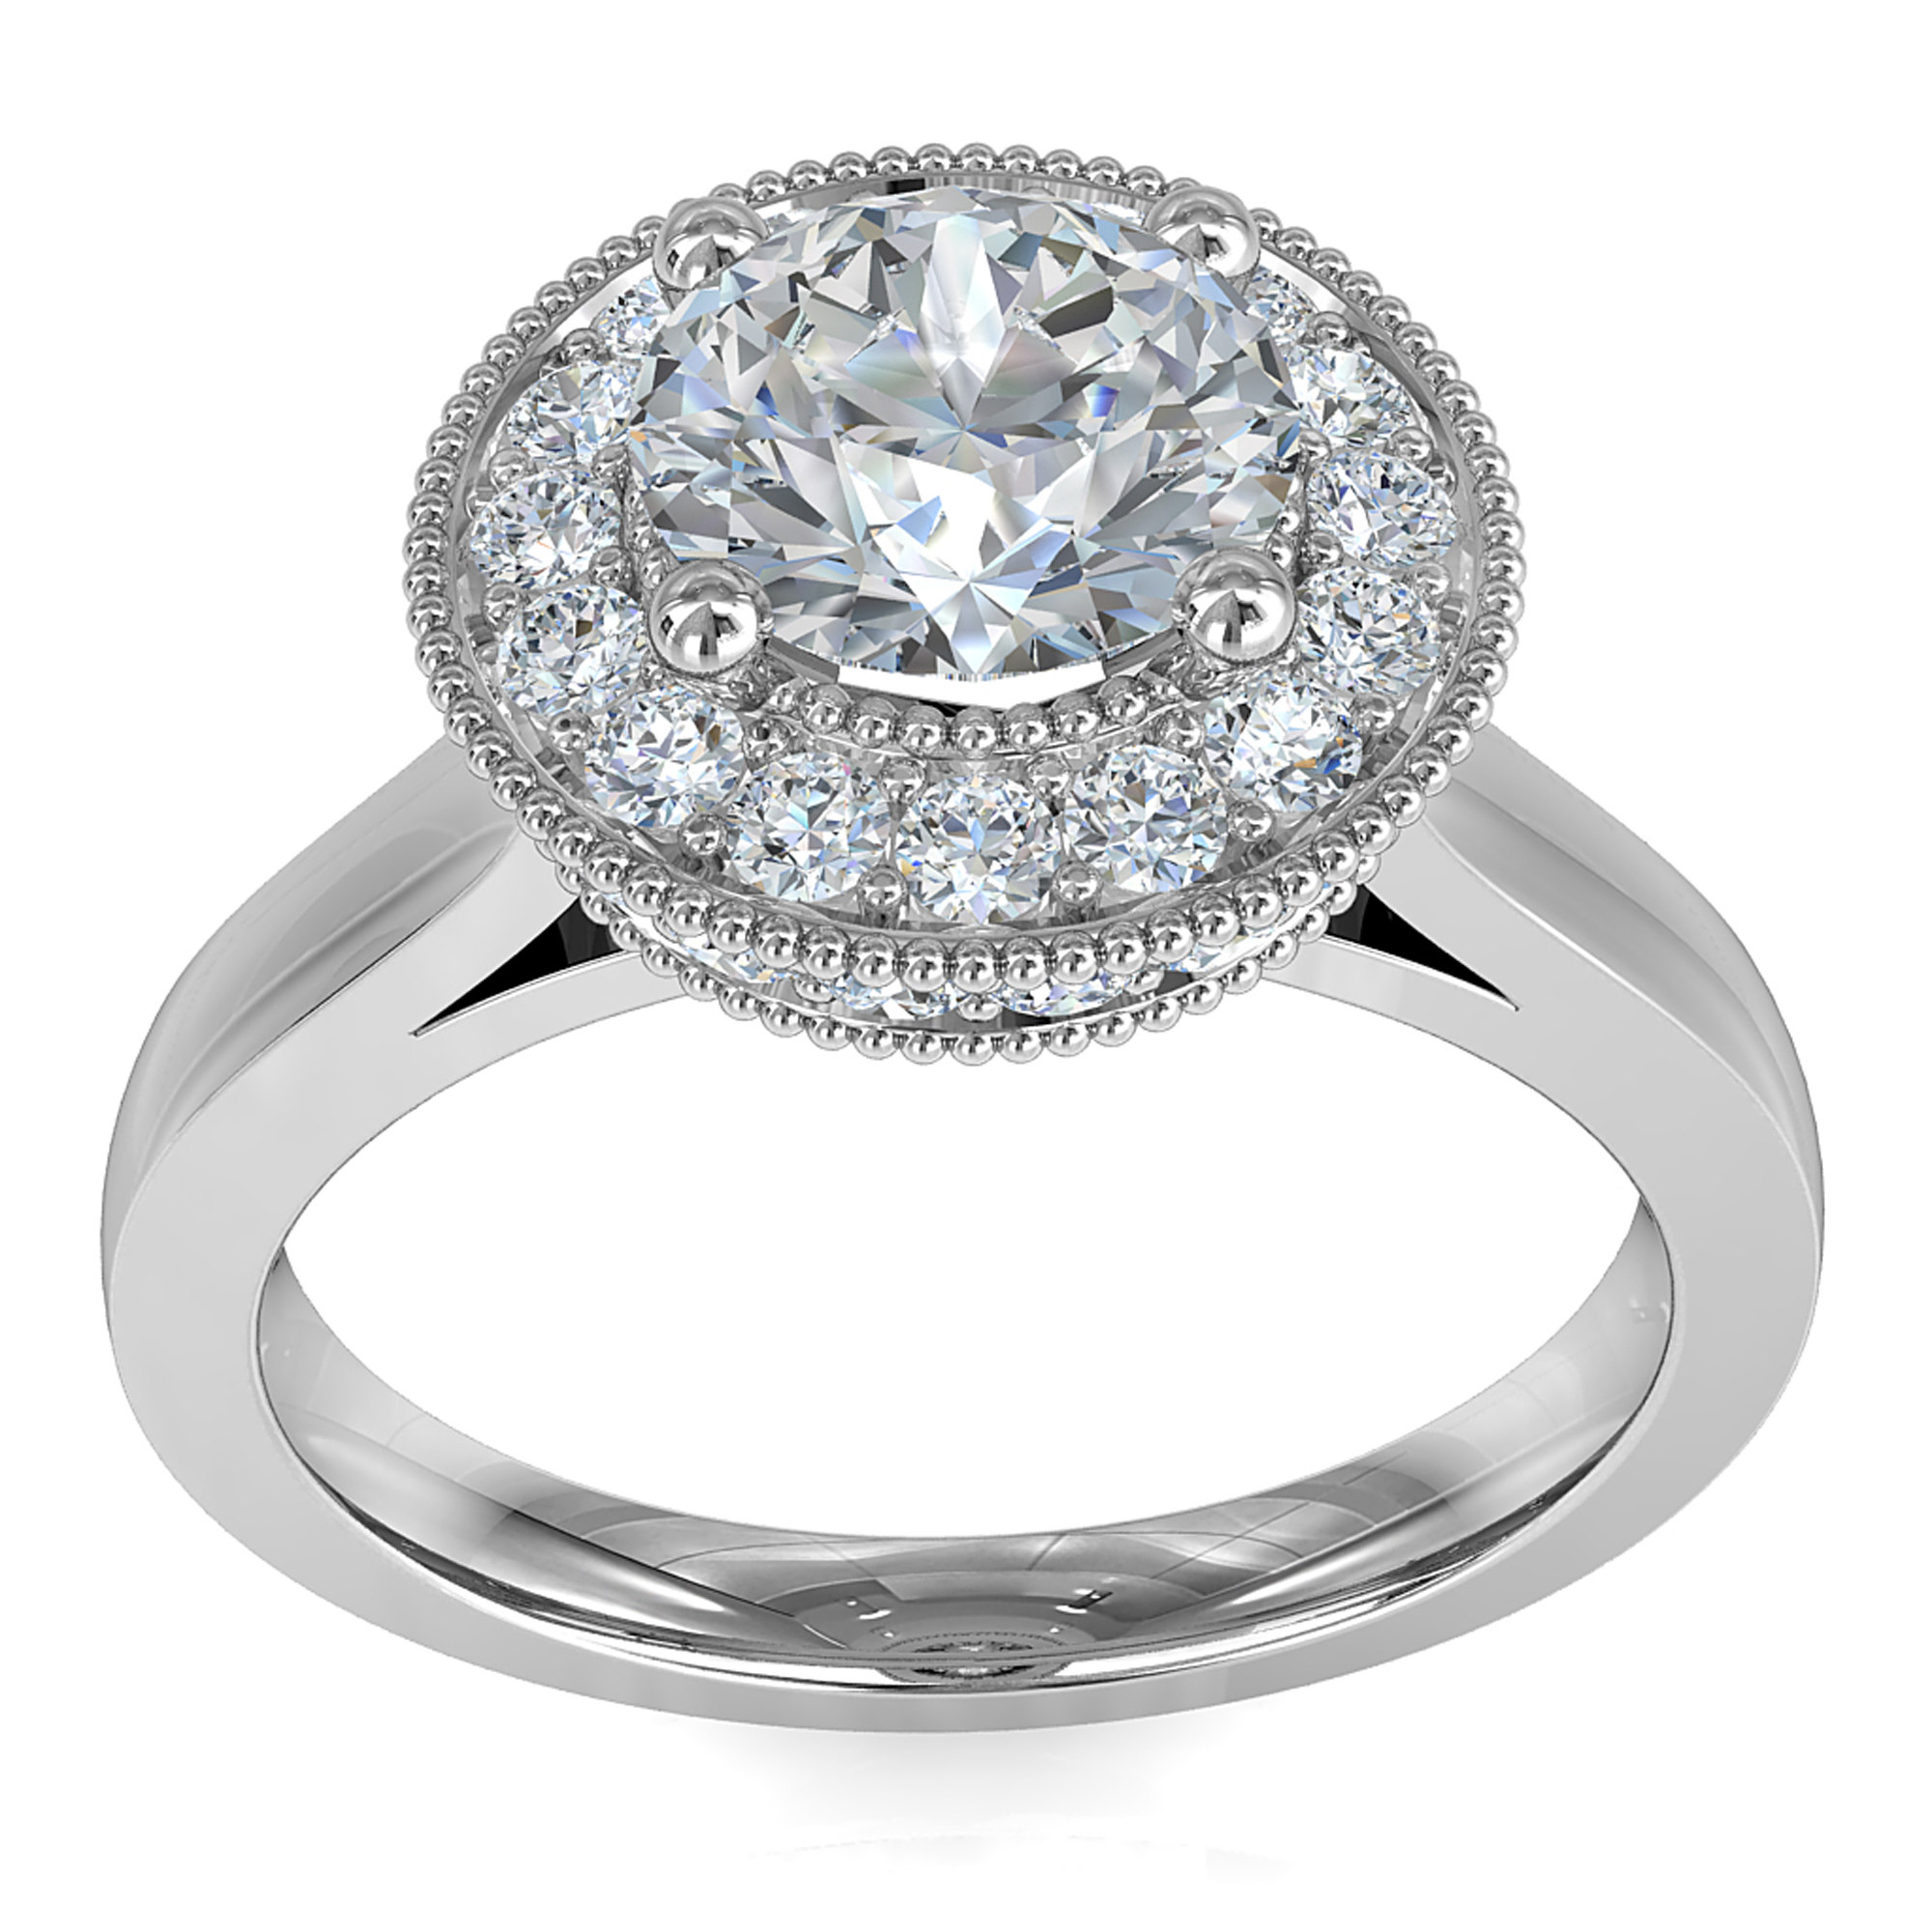 Round Brilliant Cut Halo Diamond Engagement Ring, 4 Claws Set in a Rolled Milgrain Bead Set Halo on Straight Half-Round Band with a Crossover Undersetting.